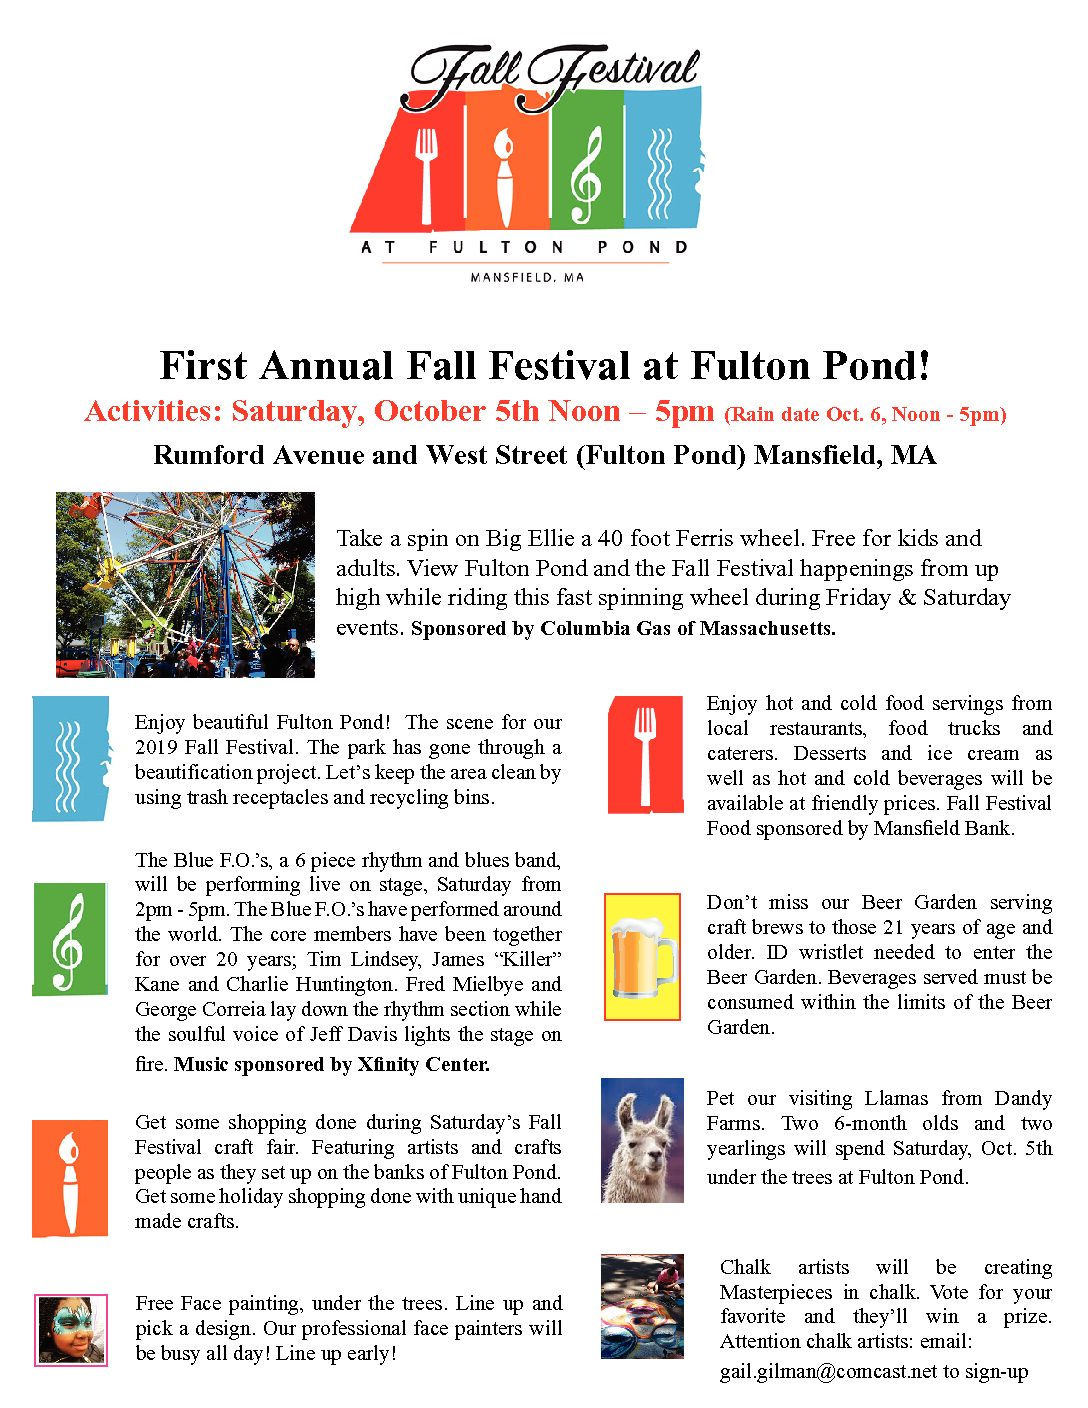 Fall Festival at Fulton Pond